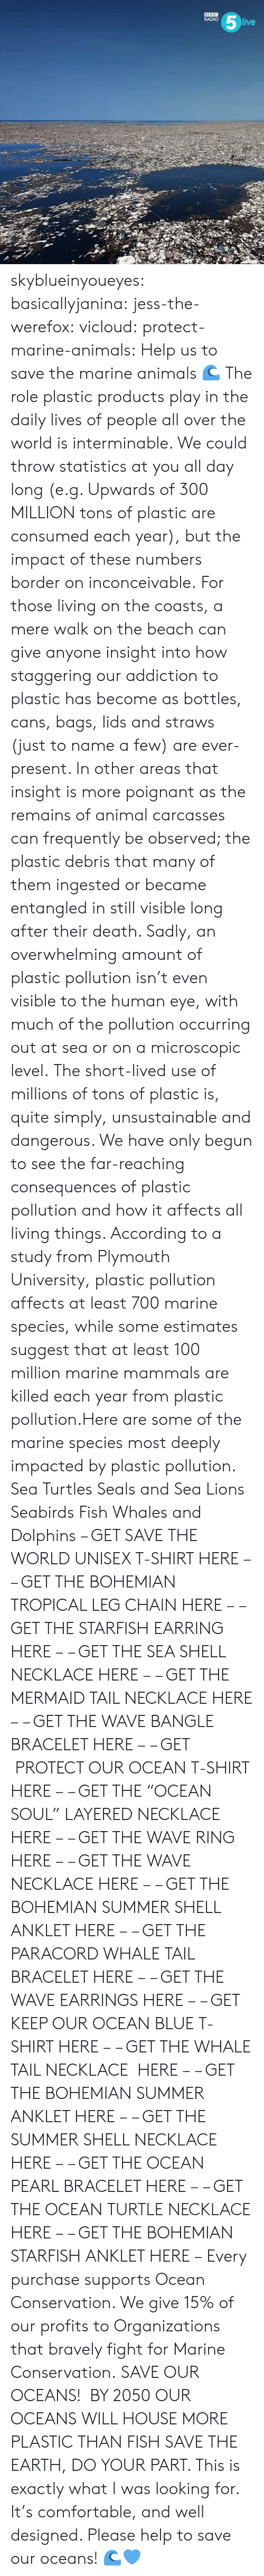 "save the earth: RADIO  ive skyblueinyoueyes:  basicallyjanina: jess-the-werefox:   vicloud:   protect-marine-animals:  Help us to save the marine animals 🌊 The role plastic products play in the daily lives of people all over the world is interminable. We could throw statistics at you all day long (e.g. Upwards of 300 MILLION tons of plastic are consumed each year), but the impact of these numbers border on inconceivable. For those living on the coasts, a mere walk on the beach can give anyone insight into how staggering our addiction to plastic has become as bottles, cans, bags, lids and straws (just to name a few) are ever-present. In other areas that insight is more poignant as the remains of animal carcasses can frequently be observed; the plastic debris that many of them ingested or became entangled in still visible long after their death. Sadly, an overwhelming amount of plastic pollution isn't even visible to the human eye, with much of the pollution occurring out at sea or on a microscopic level. The short-lived use of millions of tons of plastic is, quite simply, unsustainable and dangerous. We have only begun to see the far-reaching consequences of plastic pollution and how it affects all living things. According to a study from Plymouth University, plastic pollution affects at least 700 marine species, while some estimates suggest that at least 100 million marine mammals are killed each year from plastic pollution.Here are some of the marine species most deeply impacted by plastic pollution. Sea Turtles Seals and Sea Lions Seabirds Fish Whales and Dolphins – GET SAVE THE WORLD UNISEX T-SHIRT HERE – – GET THE BOHEMIAN TROPICAL LEG CHAIN HERE – – GET THE STARFISH EARRING HERE – – GET THE SEA SHELL NECKLACE HERE – – GET THE MERMAID TAIL NECKLACE HERE – – GET THE WAVE BANGLE BRACELET HERE – – GET  PROTECT OUR OCEAN T-SHIRT HERE – – GET THE ""OCEAN SOUL"" LAYERED NECKLACE HERE – – GET THE WAVE RING HERE – – GET THE WAVE NECKLACE HERE – – GET THE BOHEMIAN SUMMER SHELL ANKLET HERE – – GET THE PARACORD WHALE TAIL BRACELET HERE – – GET THE WAVE EARRINGS HERE – – GET KEEP OUR OCEAN BLUE T-SHIRT HERE – – GET THE WHALE TAIL NECKLACE  HERE – – GET THE BOHEMIAN SUMMER ANKLET HERE – – GET THE SUMMER SHELL NECKLACE HERE – – GET THE OCEAN PEARL BRACELET HERE – – GET THE OCEAN TURTLE NECKLACE HERE – – GET THE BOHEMIAN STARFISH ANKLET HERE – Every purchase supports Ocean Conservation. We give 15% of our profits to Organizations that bravely fight for Marine Conservation.  SAVE OUR OCEANS!    BY 2050 OUR OCEANS WILL HOUSE MORE PLASTIC THAN FISH   SAVE THE EARTH, DO YOUR PART.   This is exactly what I was looking for. It's comfortable, and well designed. Please help to save our oceans! 🌊💙"